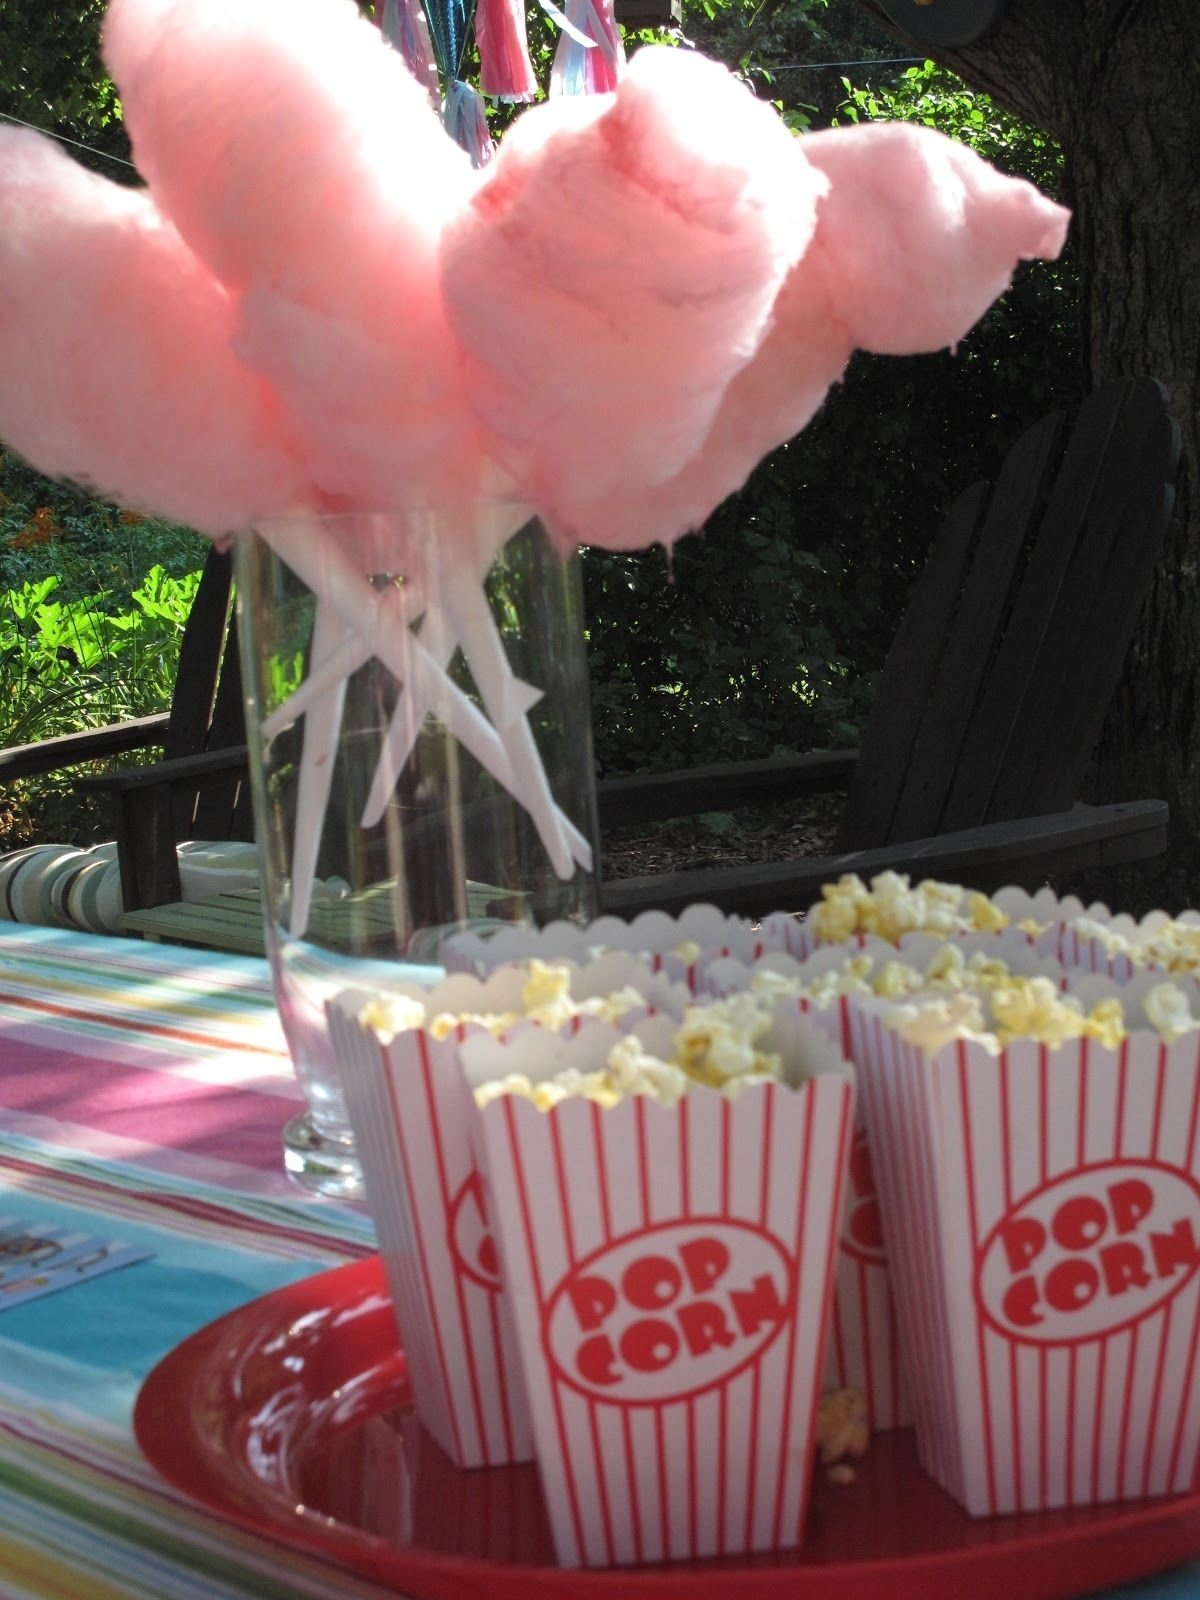 10 Best Birthday Party Ideas For 6 Year Old Girl carnival party for a three year old scenes from a 6 year old 1 2020